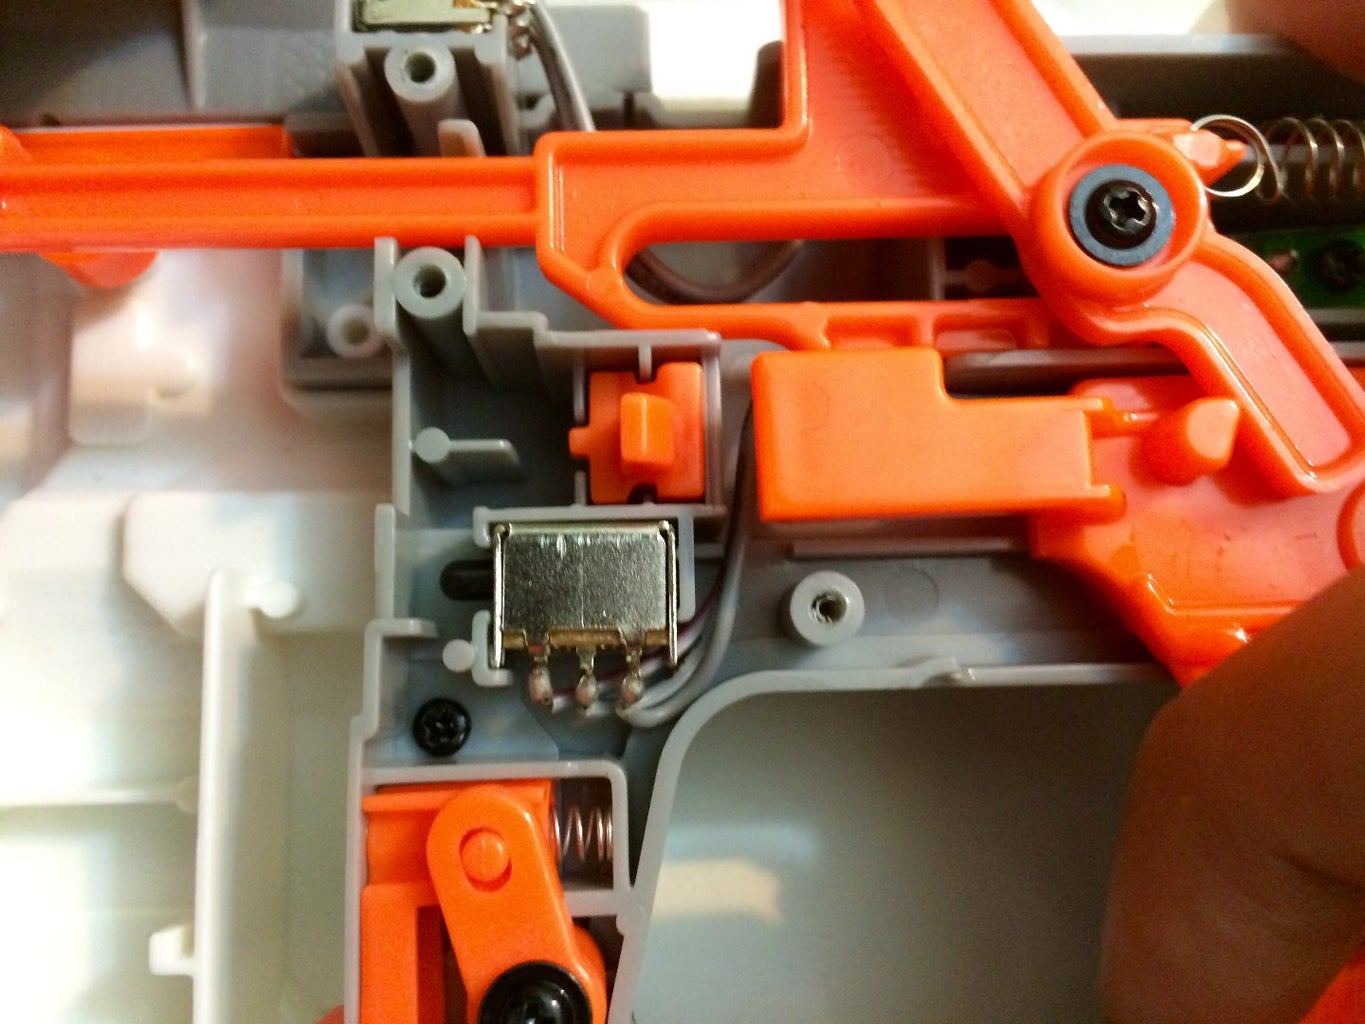 Removing the Trigger Lock